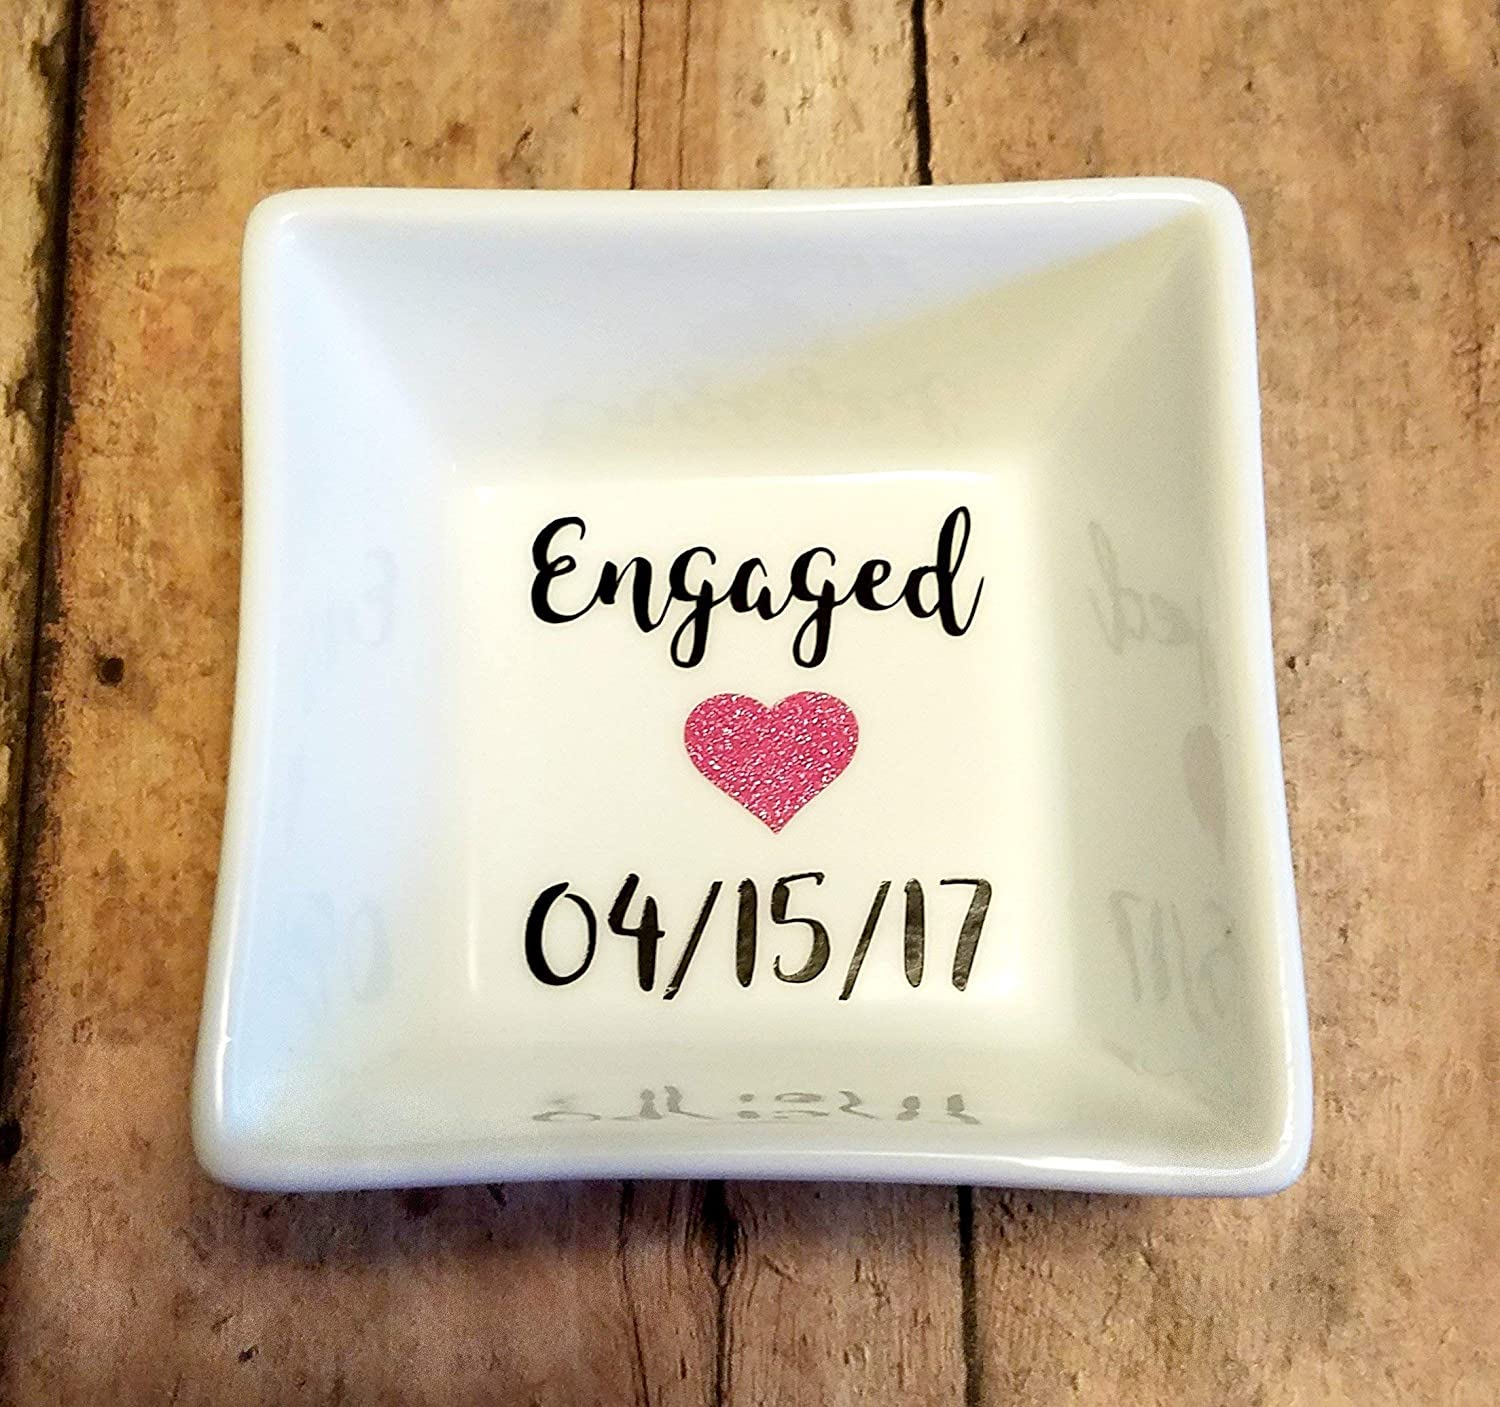 Engaged Jewelry Dish/Ring Dish with Date and Heart